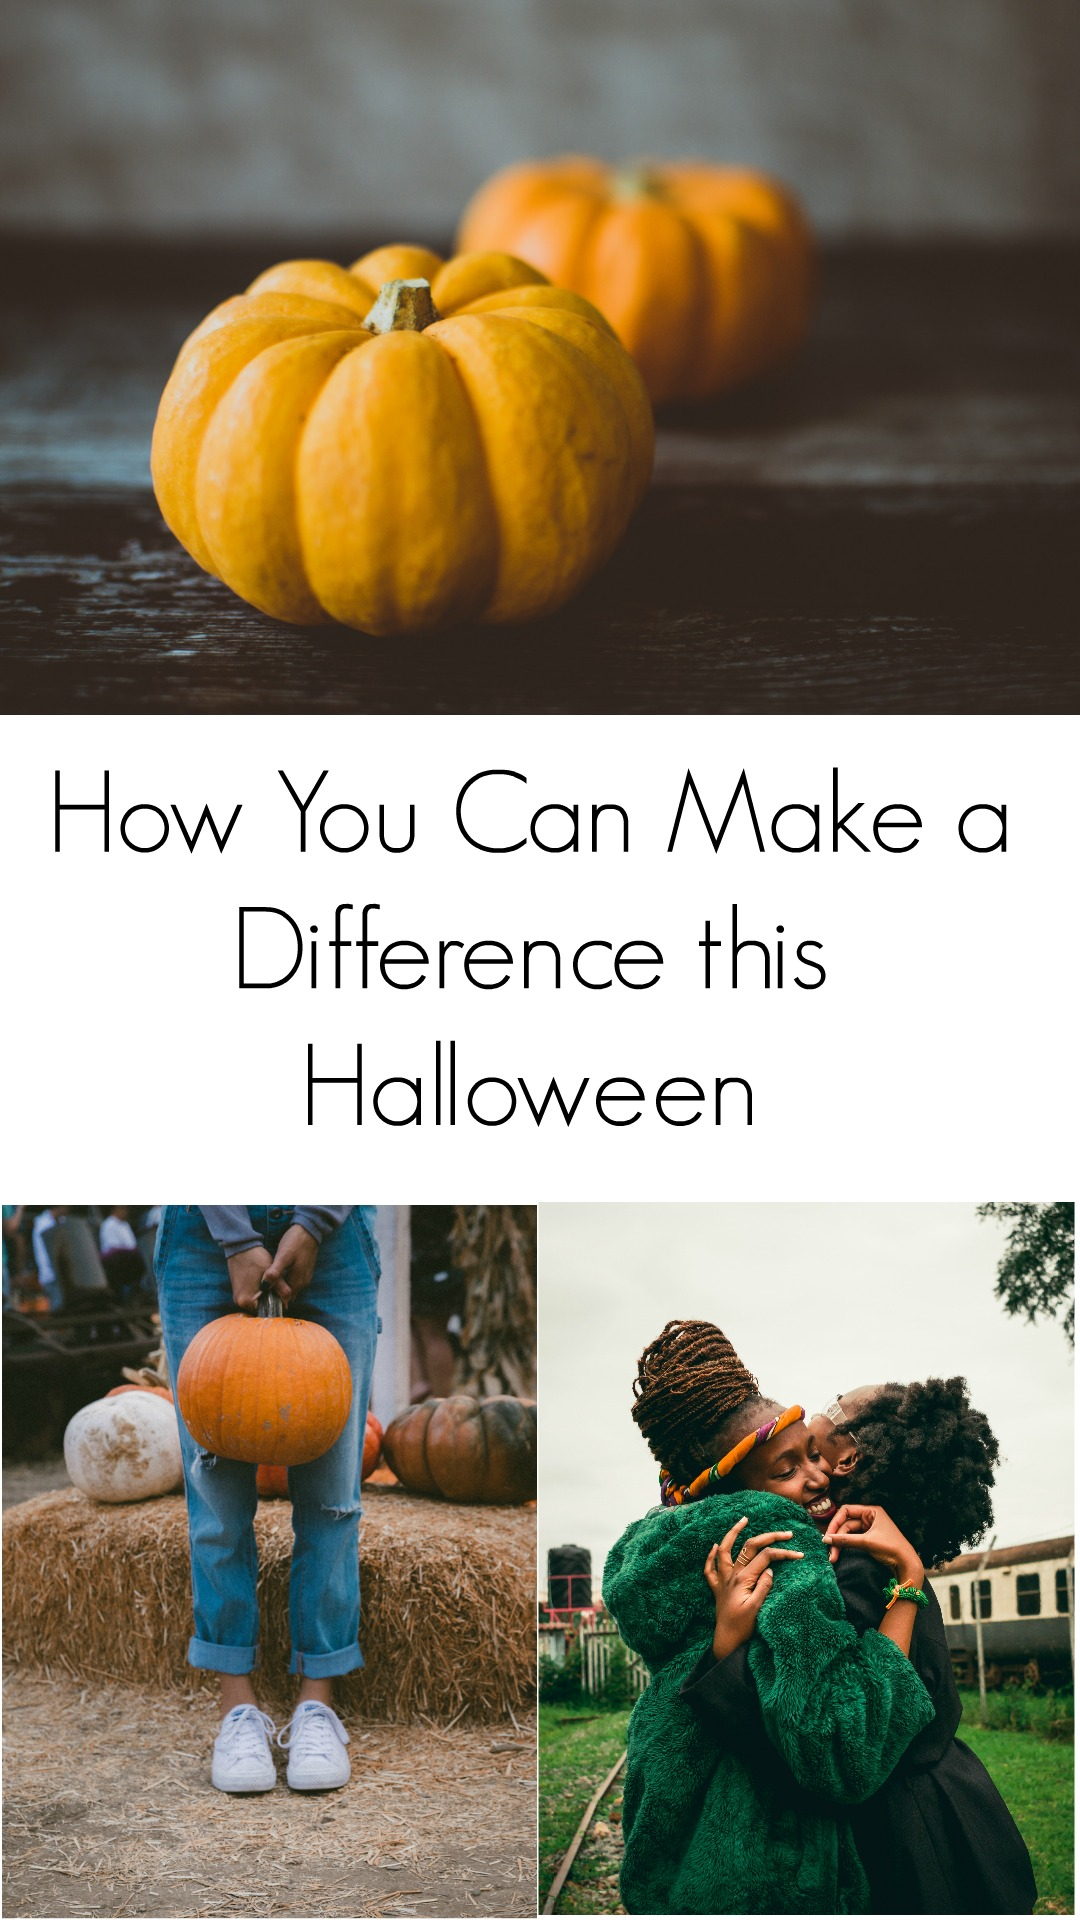 4 How You Can Make a Difference this Halloween